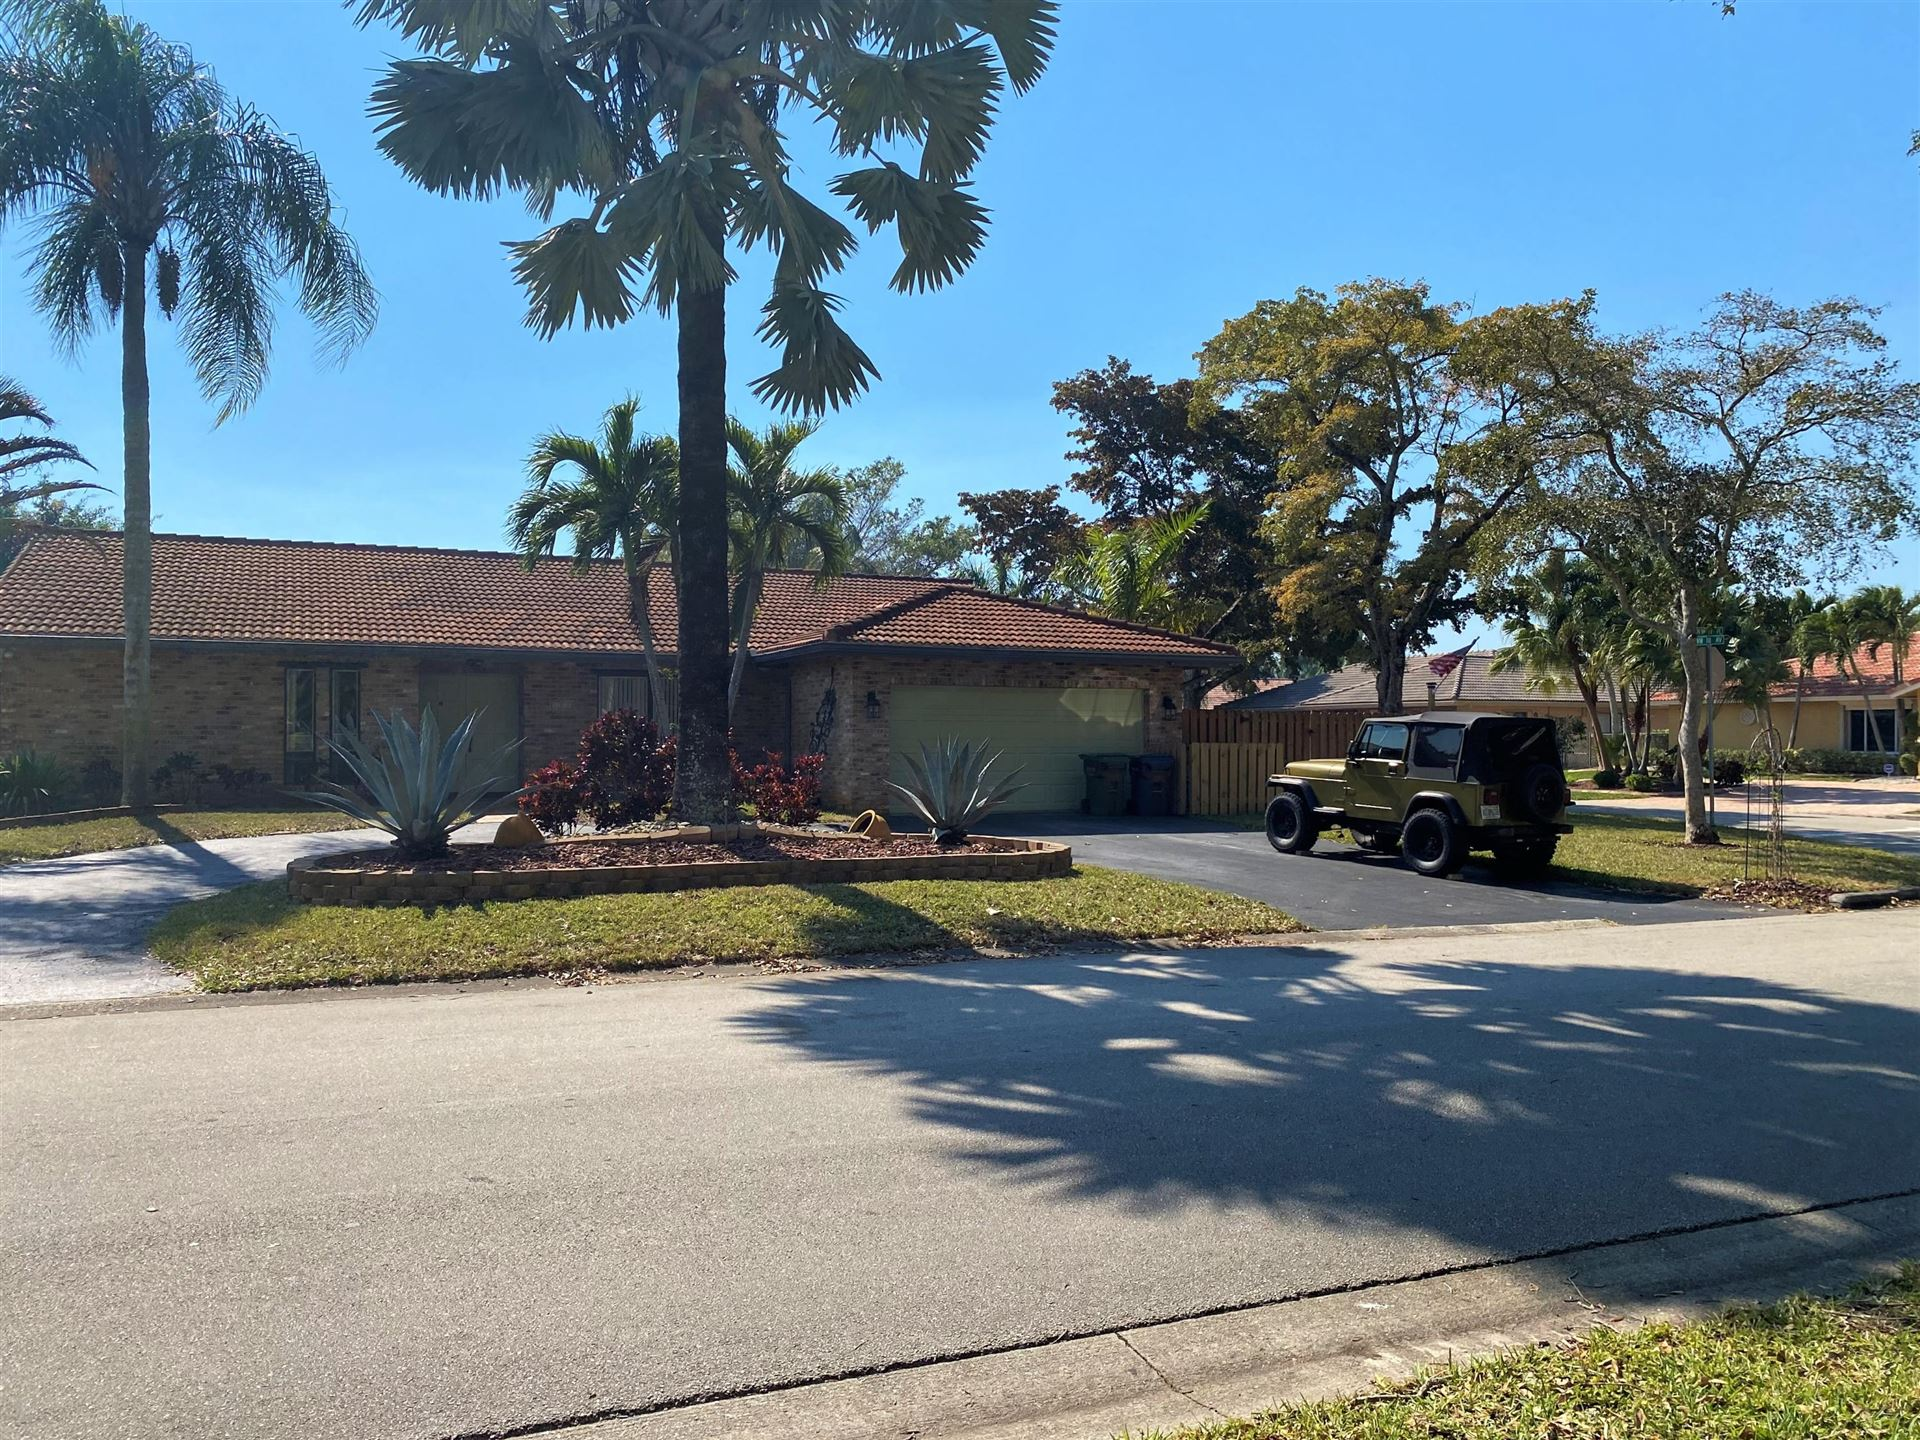 Photo of 11088 NW 17th Place, Coral Springs, FL 33071 (MLS # RX-10694936)